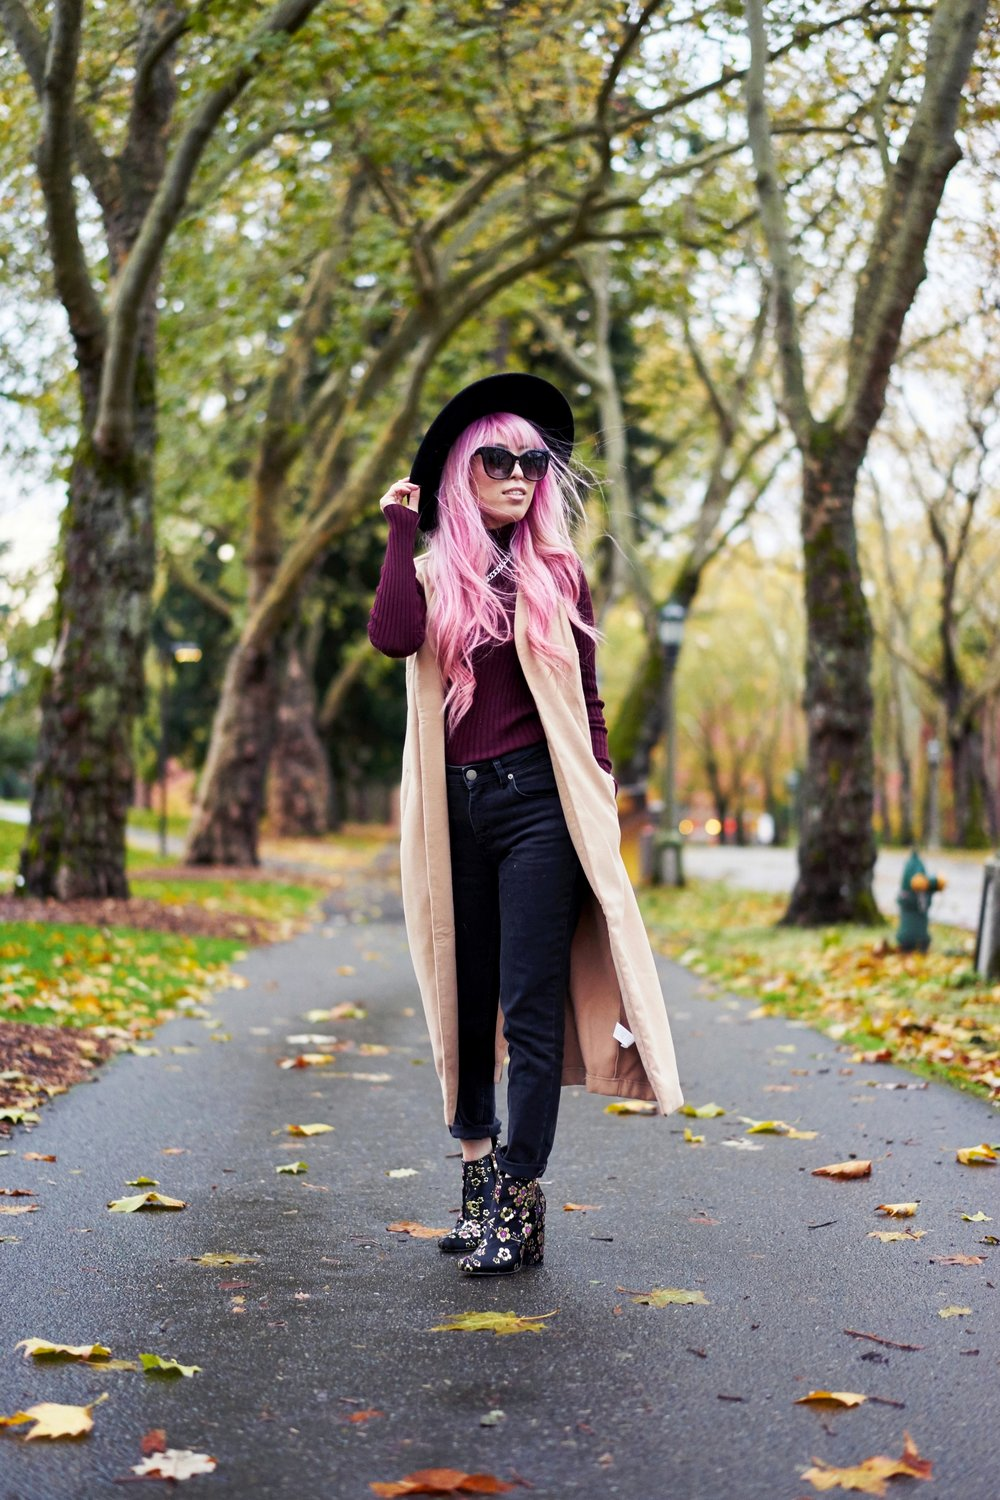 Forever 21 Fedora_Who What Wear : Target Rib Turtleneck_ASOS High Waist Mom Jeans_Ego Floral Print Ankle Boots_Christian Paul Marble Watch_Aika's Love Closet_Seattle Fashion Blogger_Japanese_Pink Hair 3